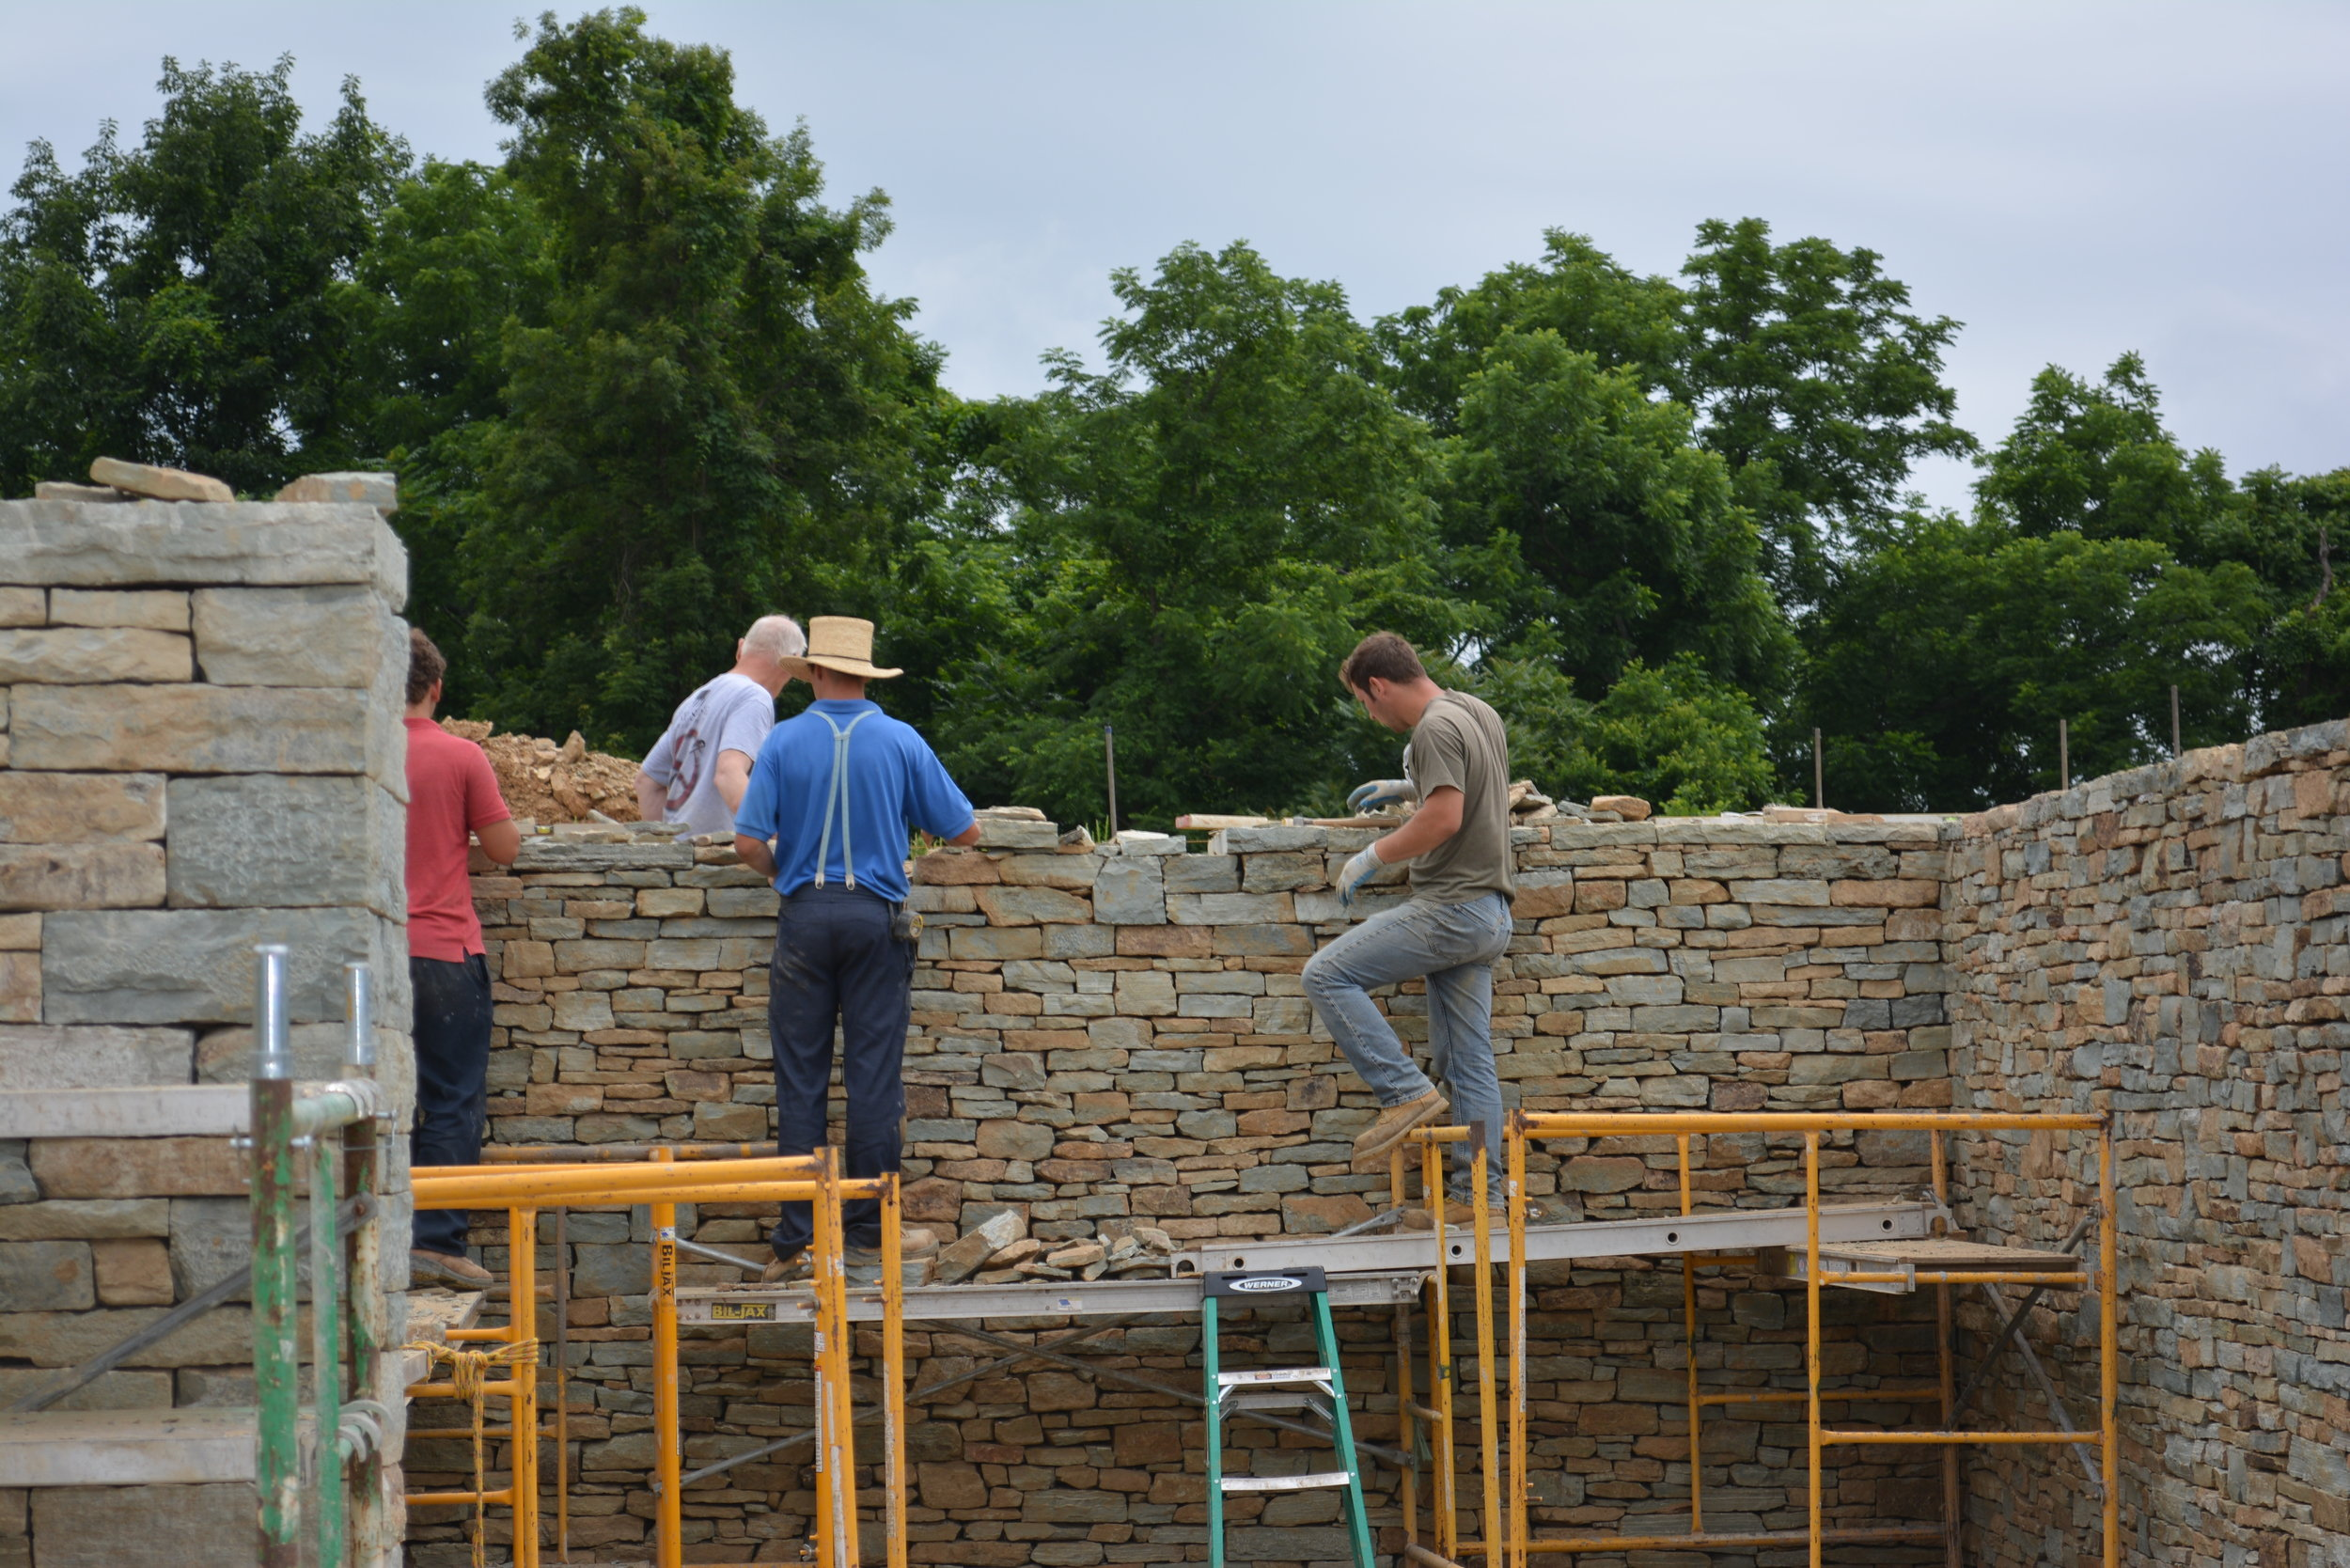 June, 2018 - the walls of the first auxiliary building are erected by hand by expert stonemasons.